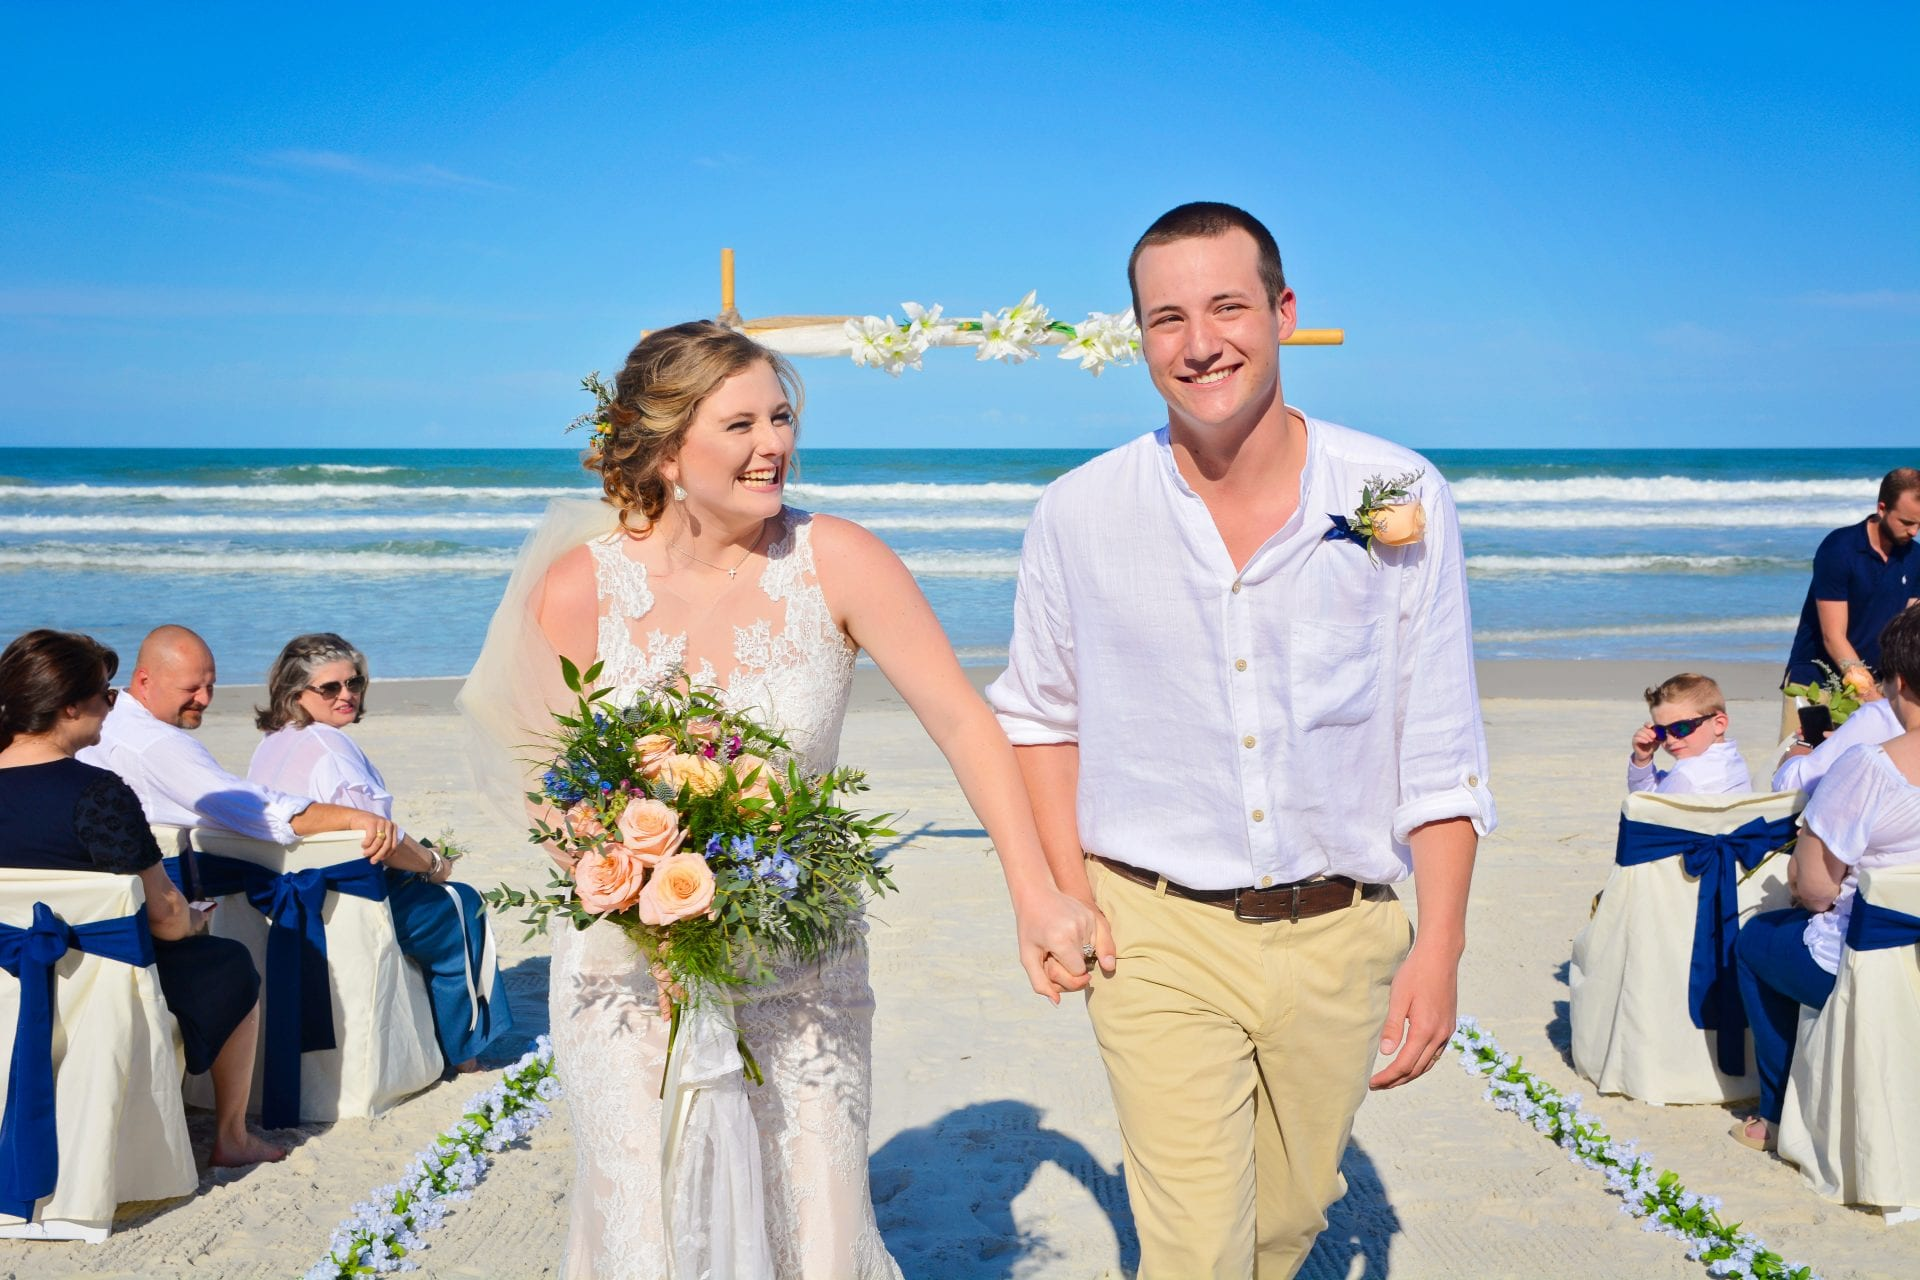 Couple smiling just married at Florida Beach Wedding